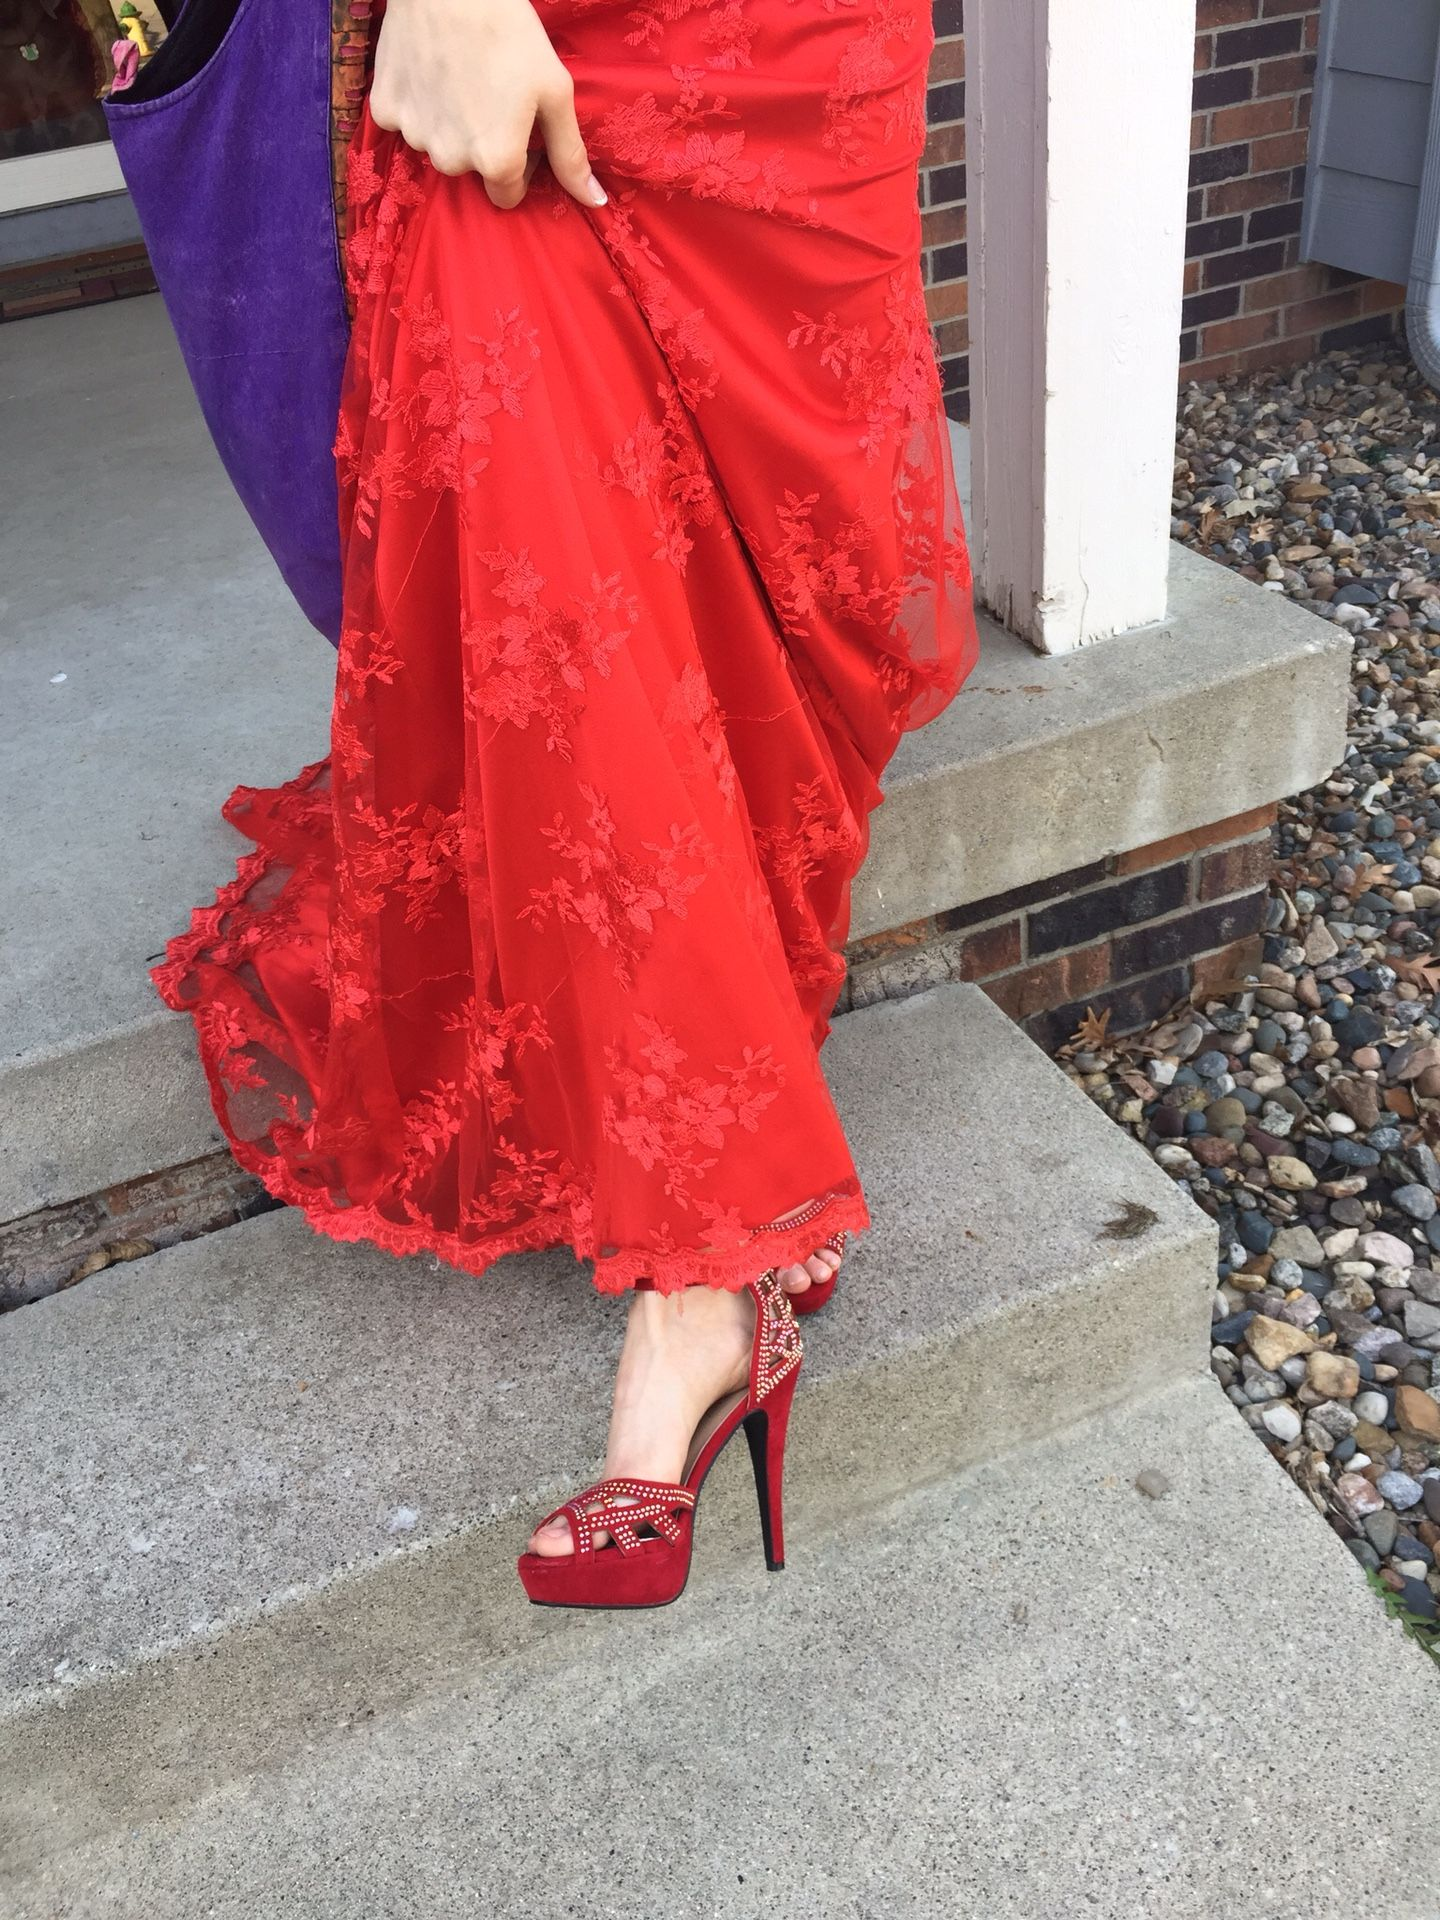 Prom dress & matching shoes